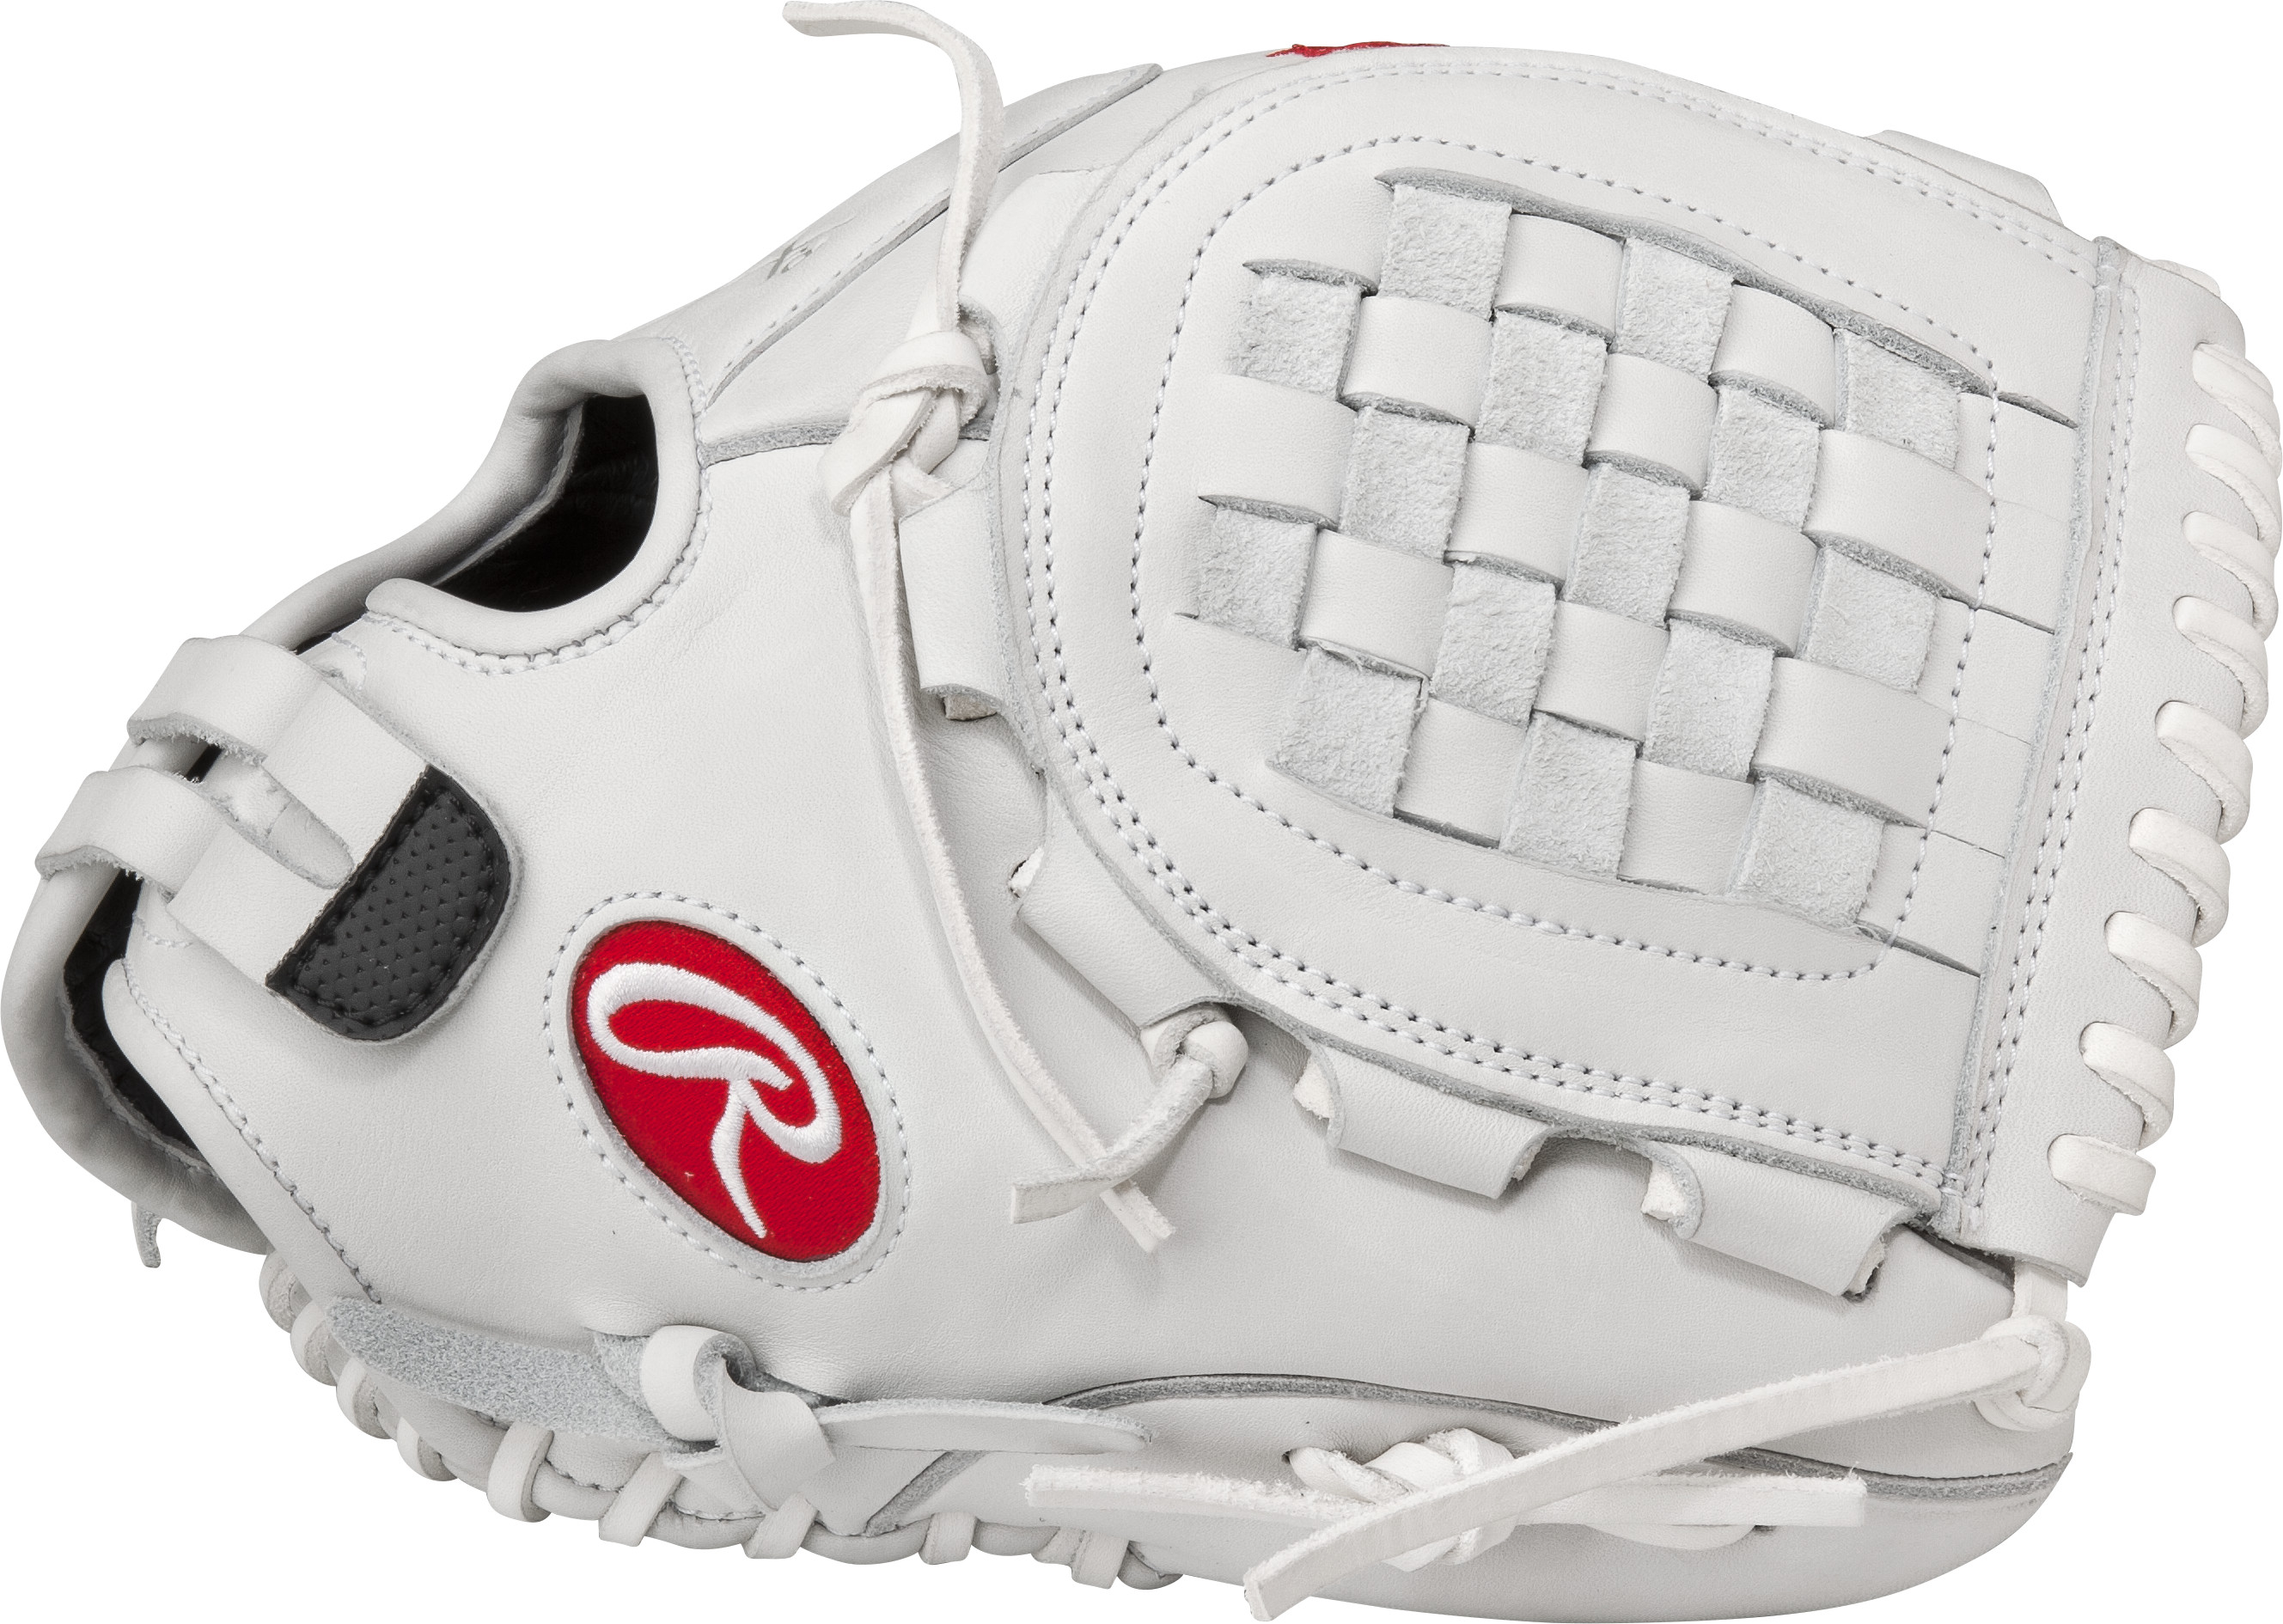 http://www.bestbatdeals.com/images/gloves/rawlings/RLA120_thumb.jpg